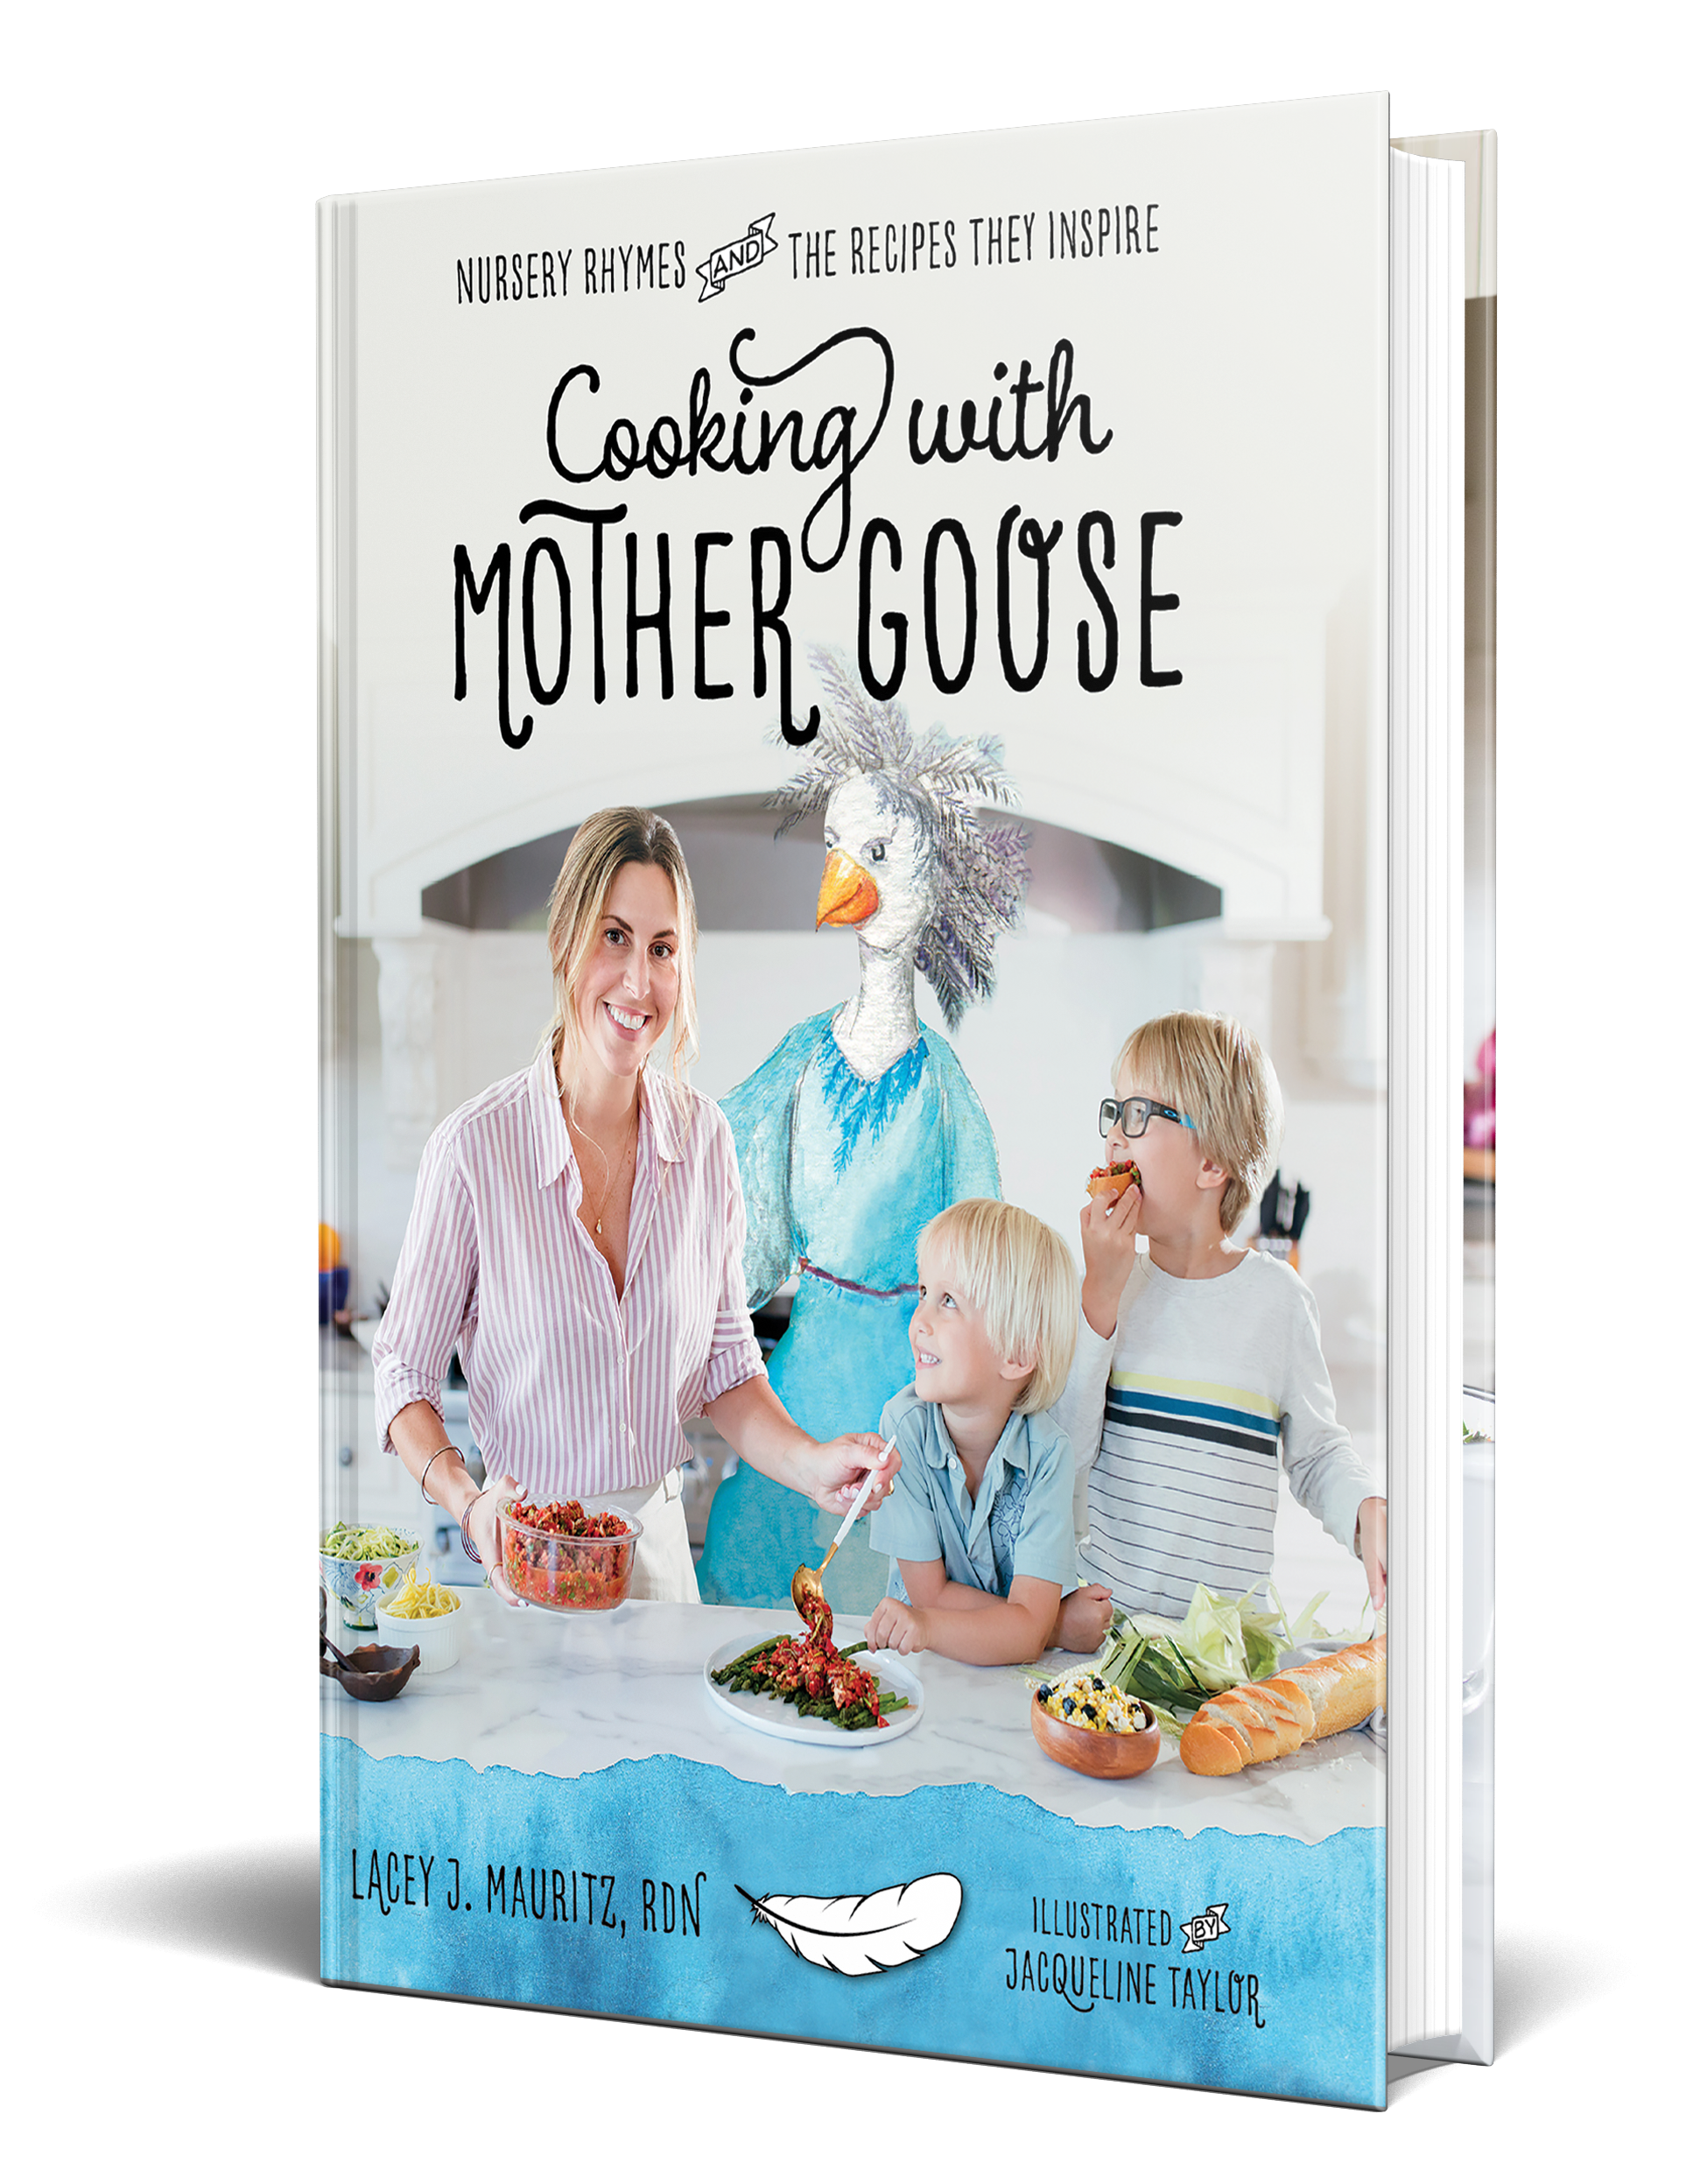 Cooking with Mother Goose